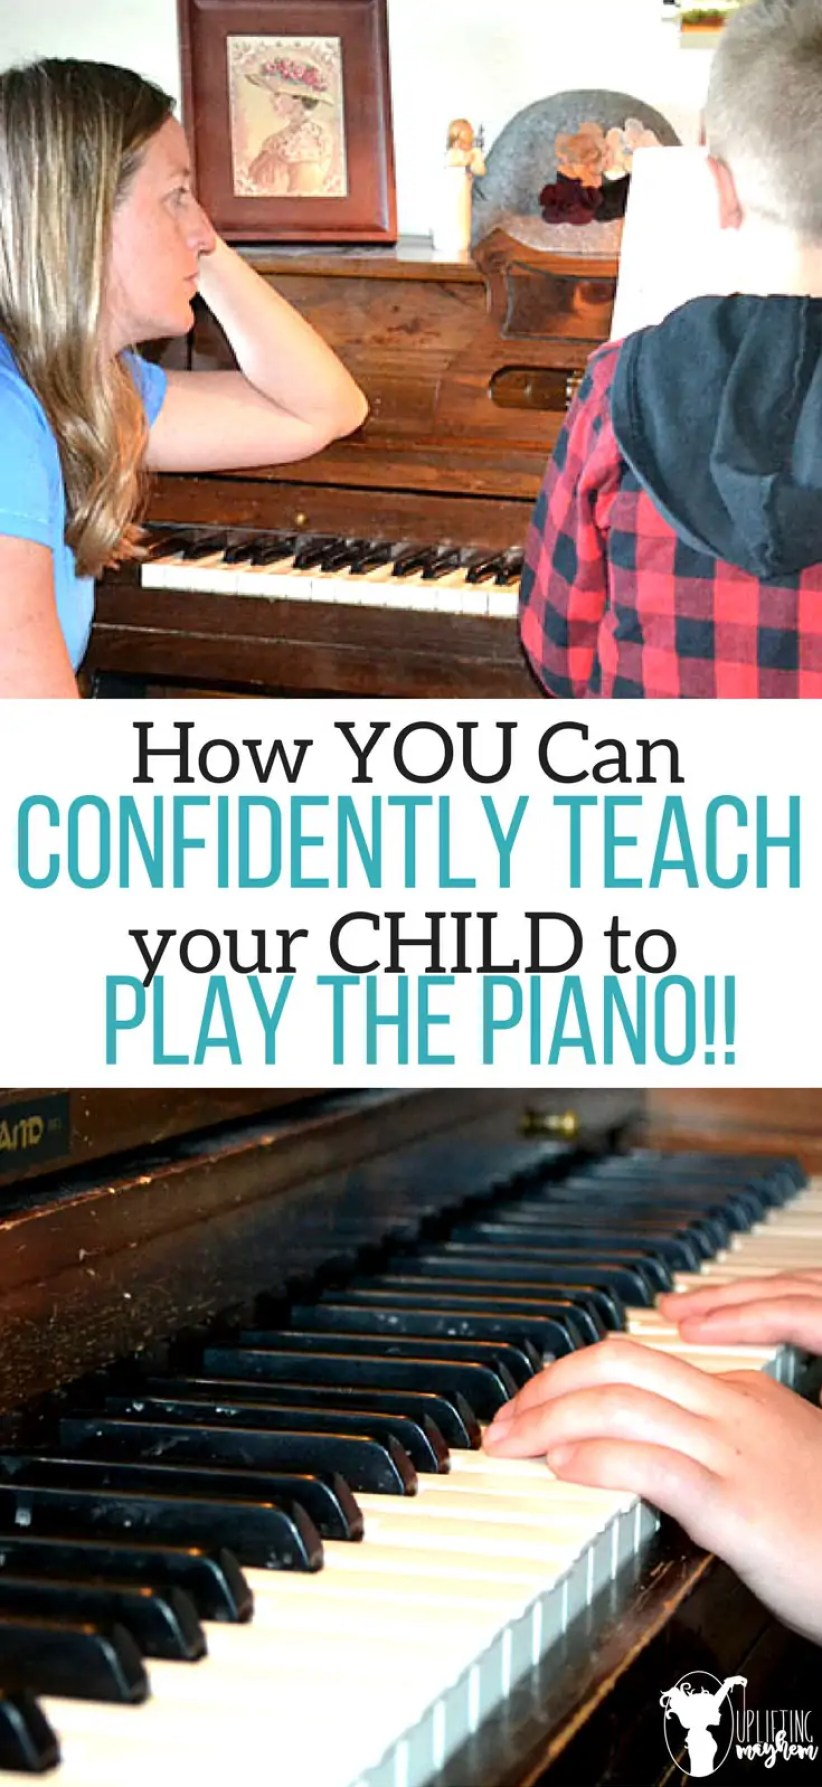 Confidently teach your child PIANO